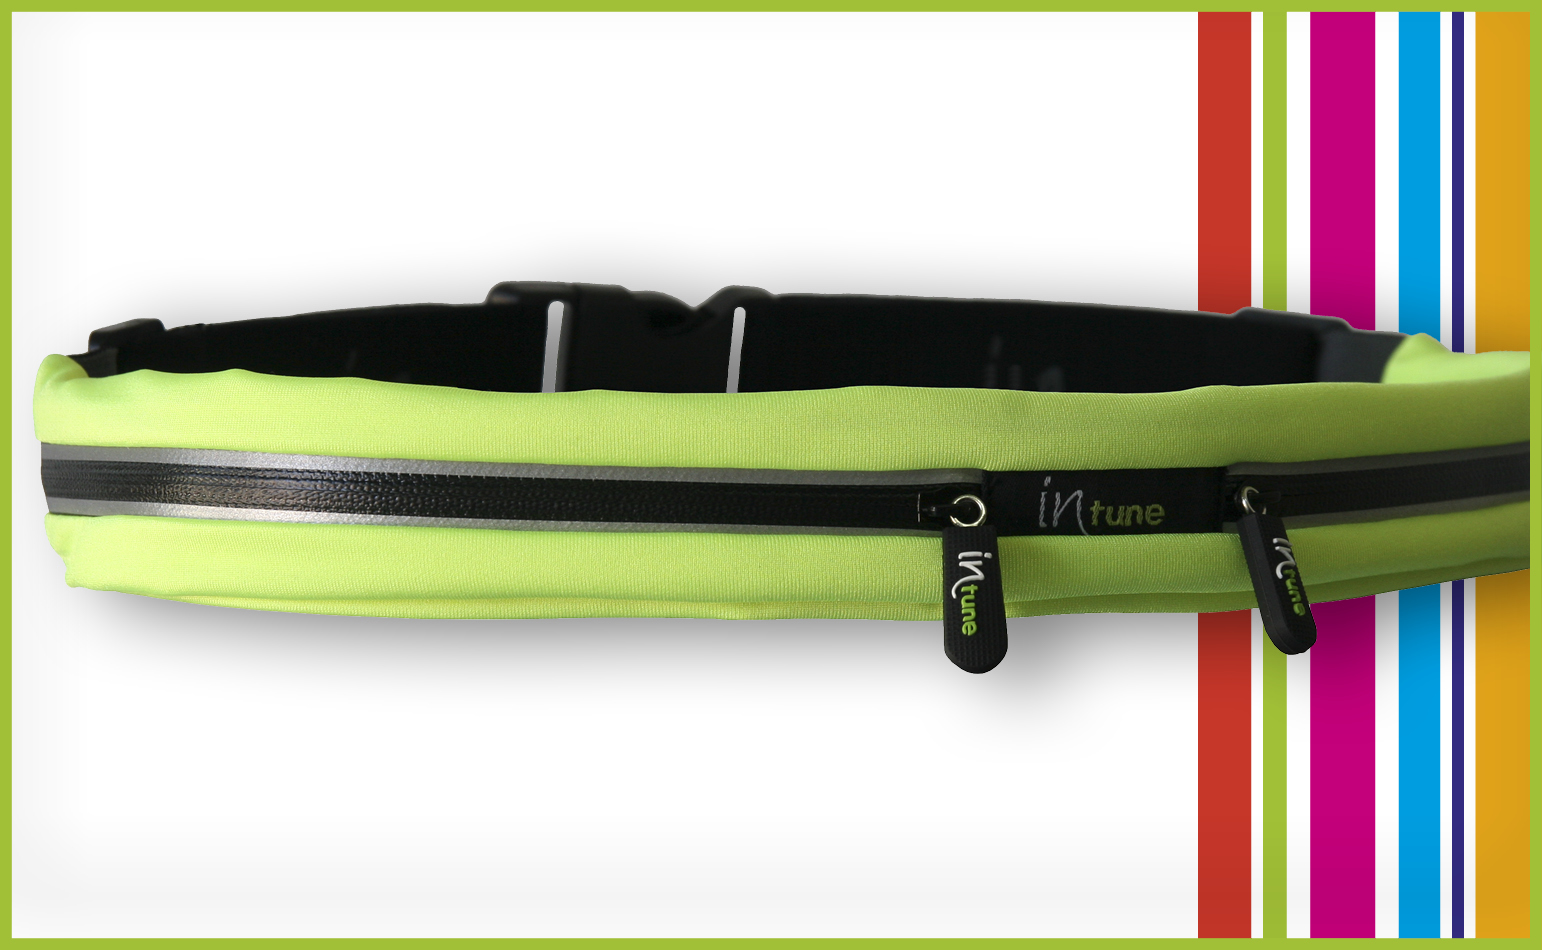 INTUNE SB2 (2 Stretch Pockets)-(LIME / BLACK)